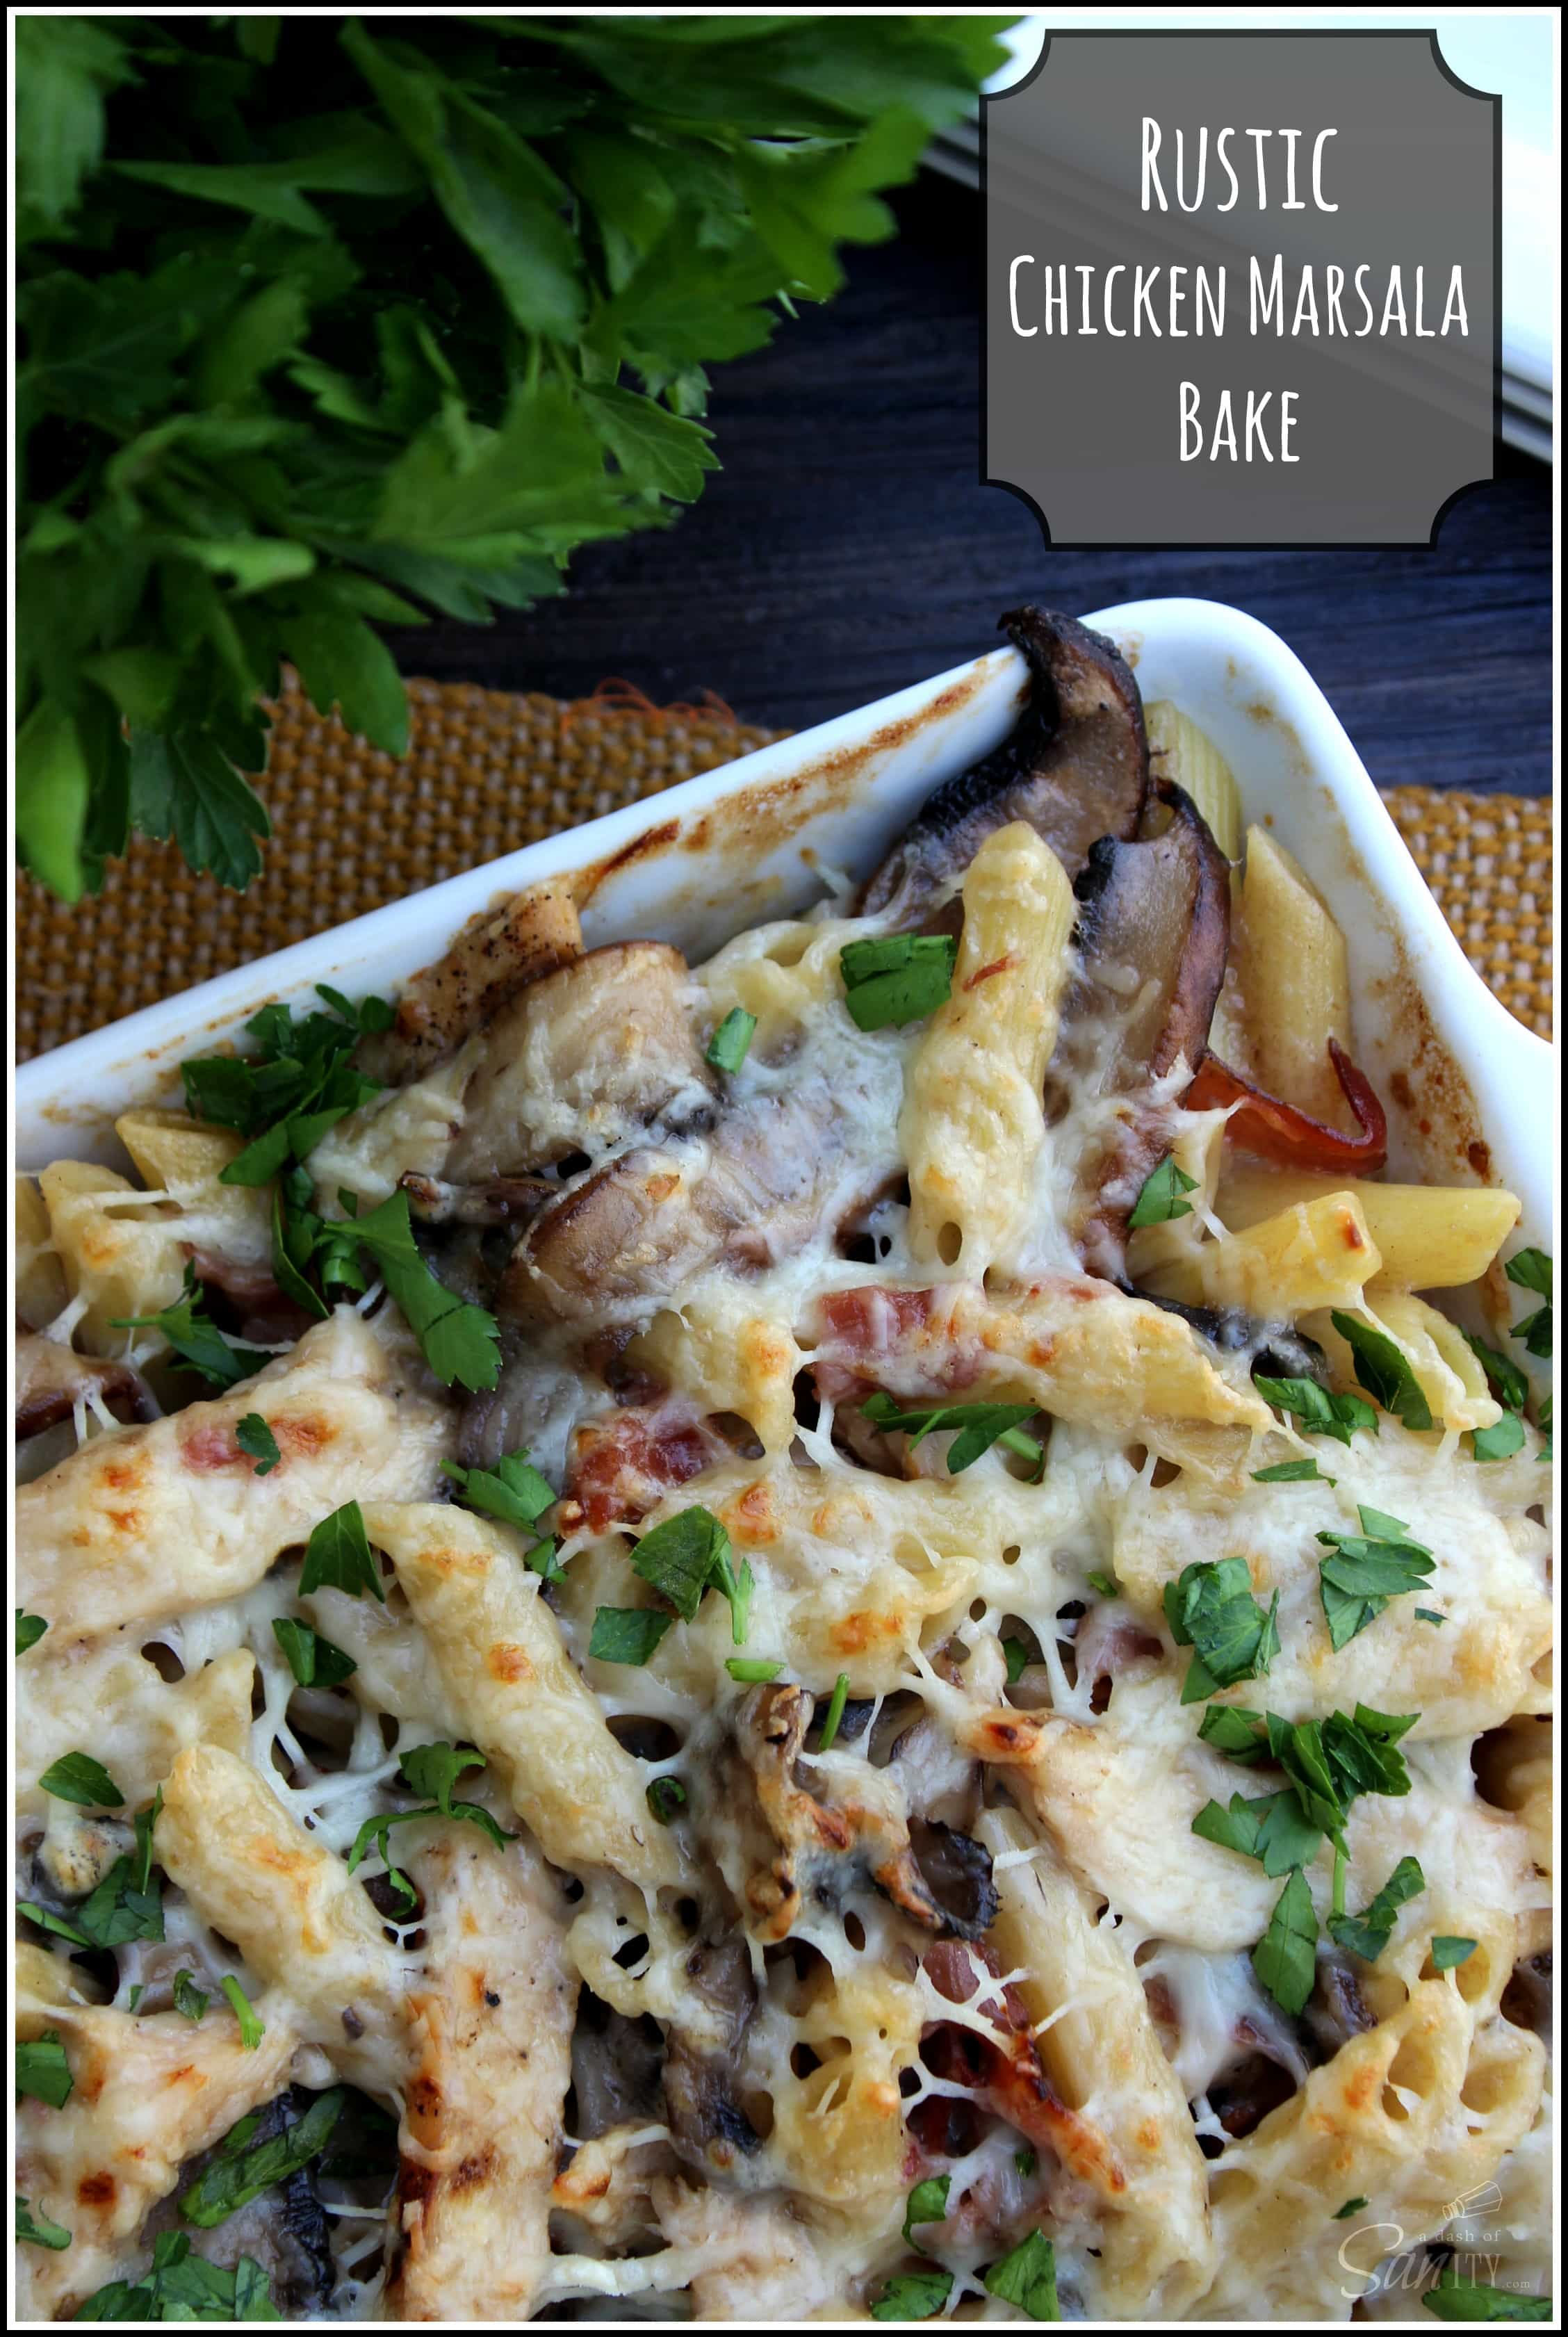 Rustic Chicken Marsala Bake Recipe from A Dash of Sanity